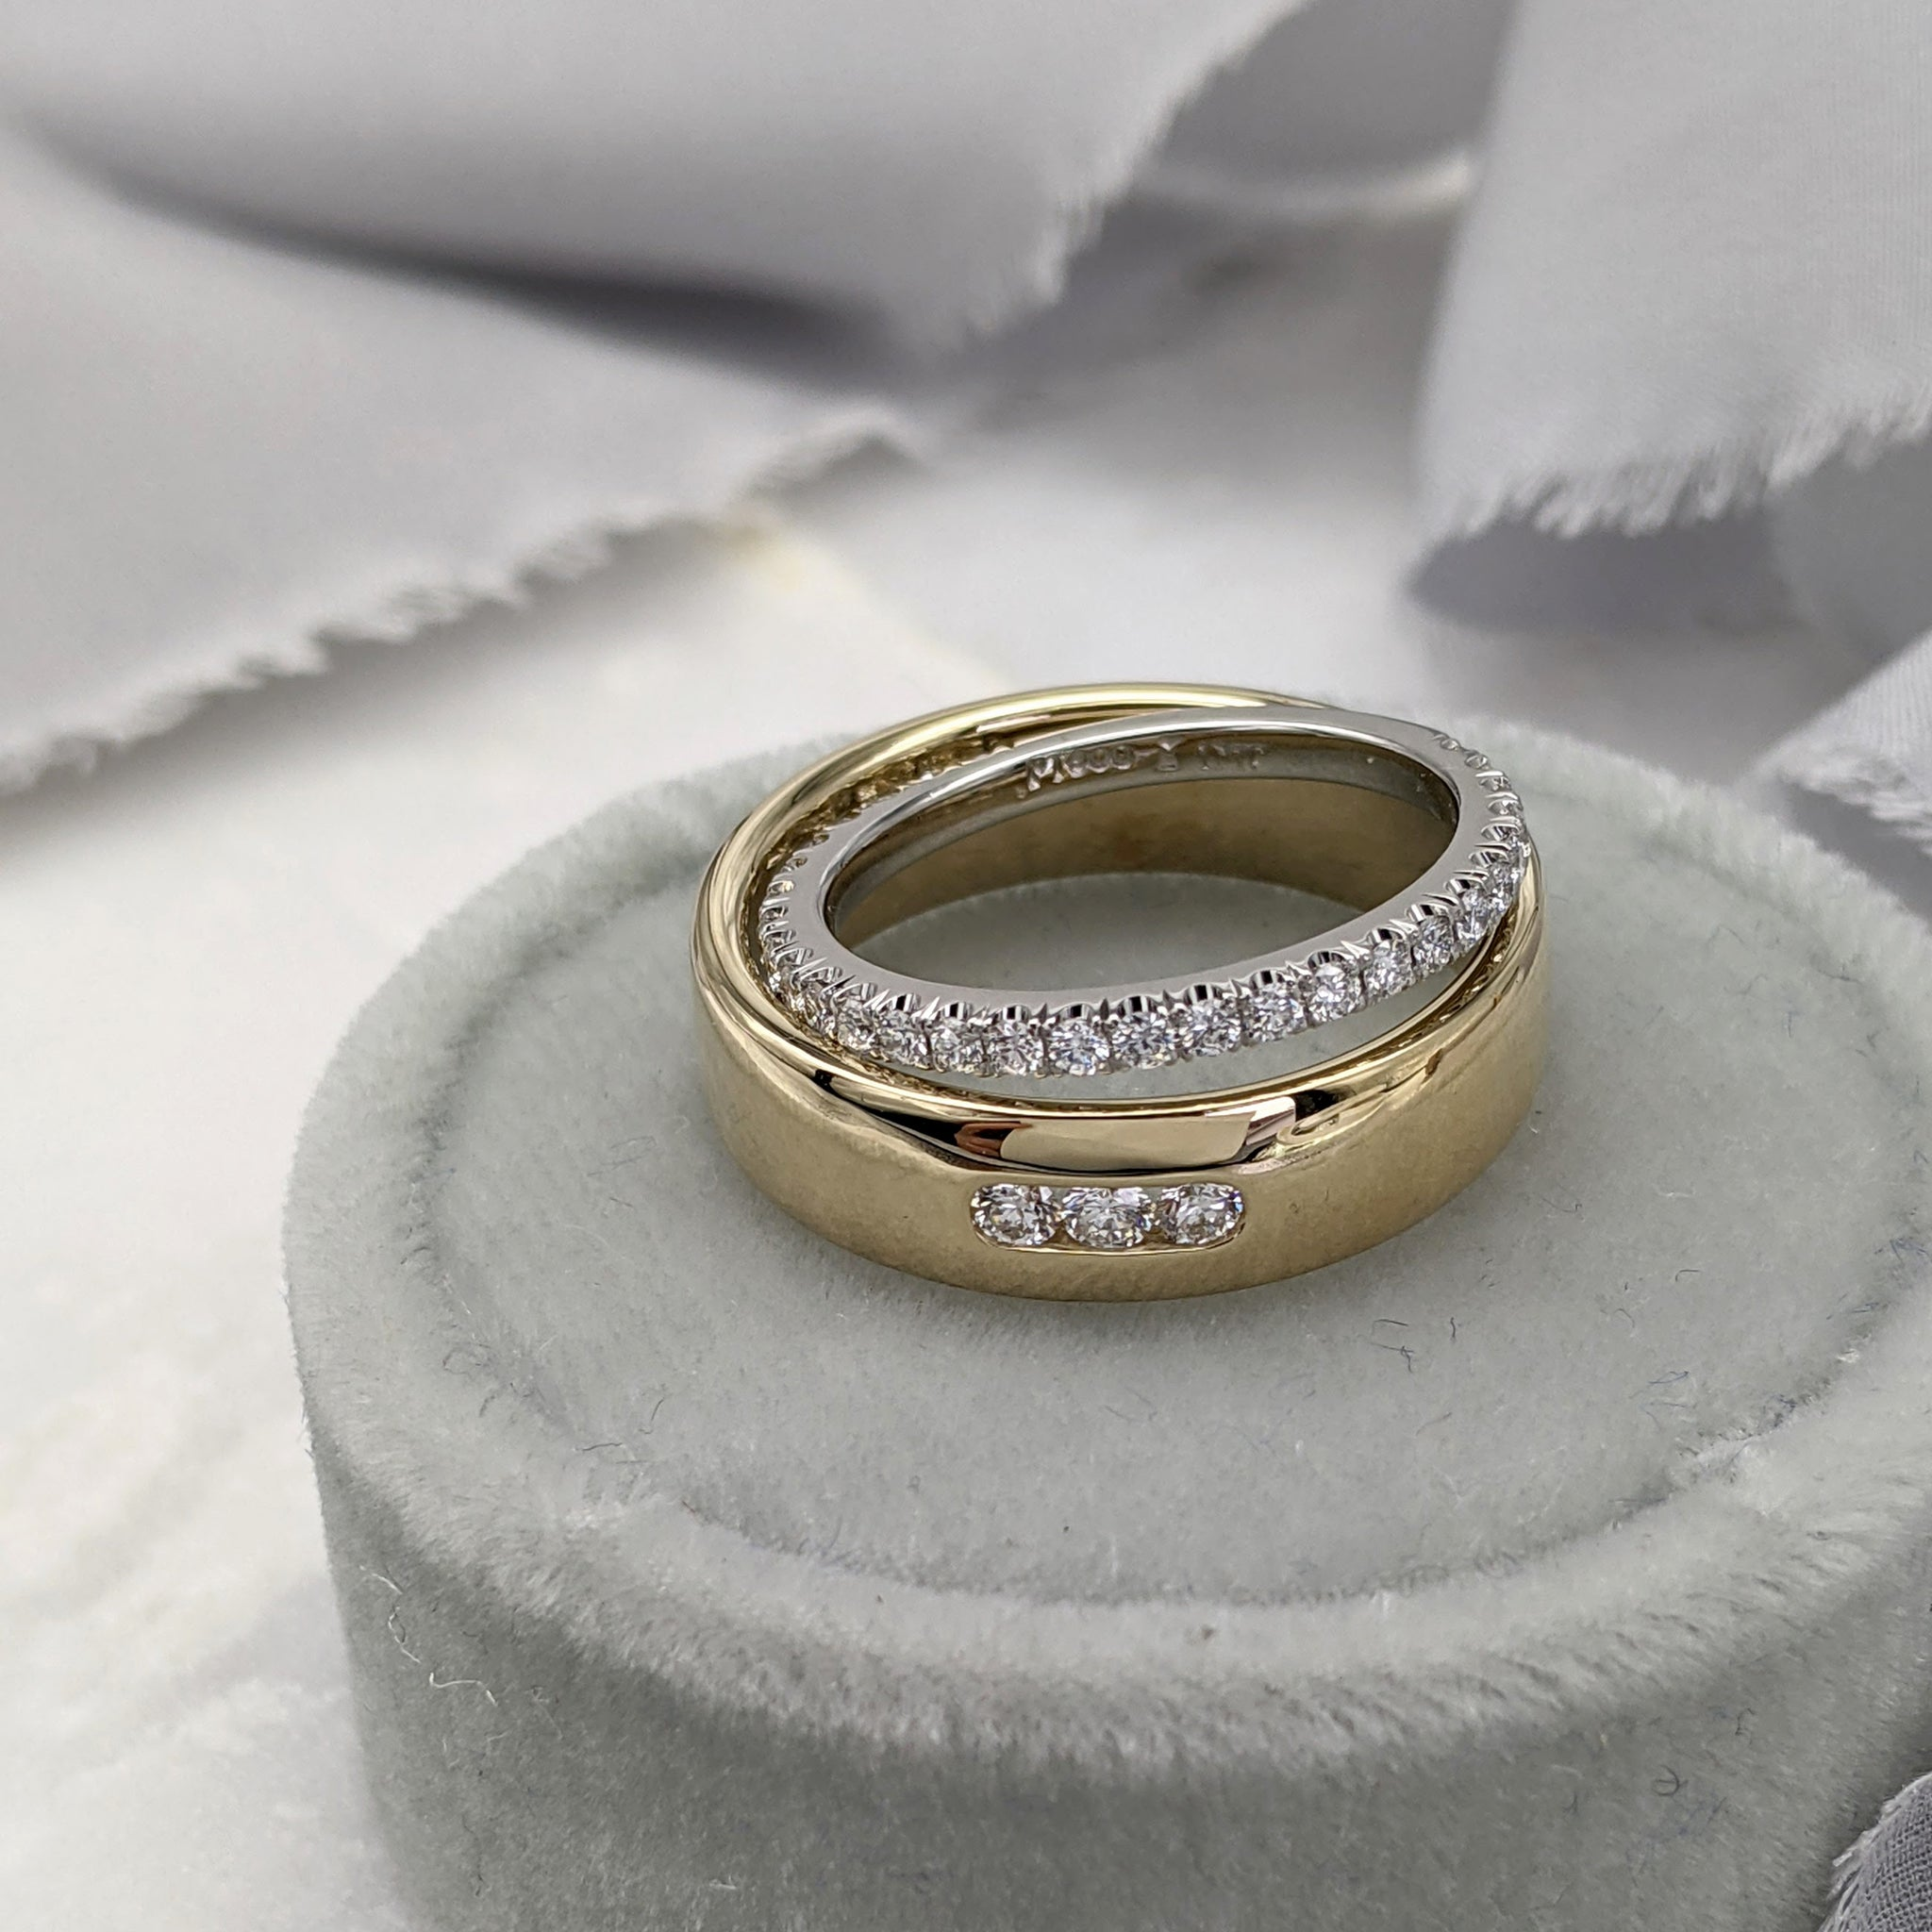 Yellow gold wedding ring with three channel set diamonds, with a platinum and diamond pavé wedding ring sitting on top of it. Both rings are in a gray velvet ring box, with gray ribbon in the background.